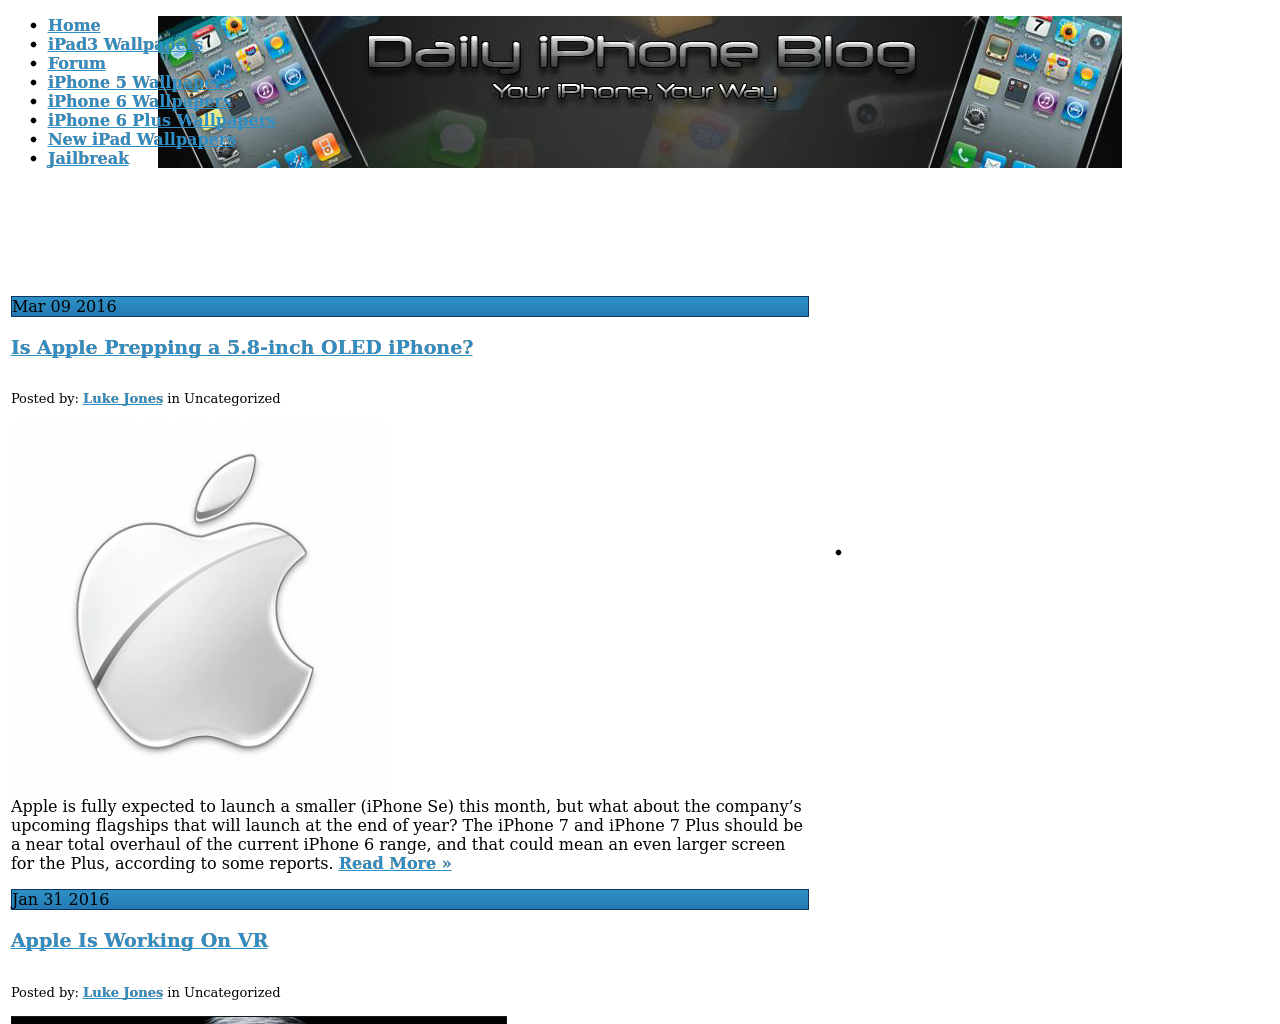 Daily-IPhone-Blog-Advertising-Reviews-Pricing